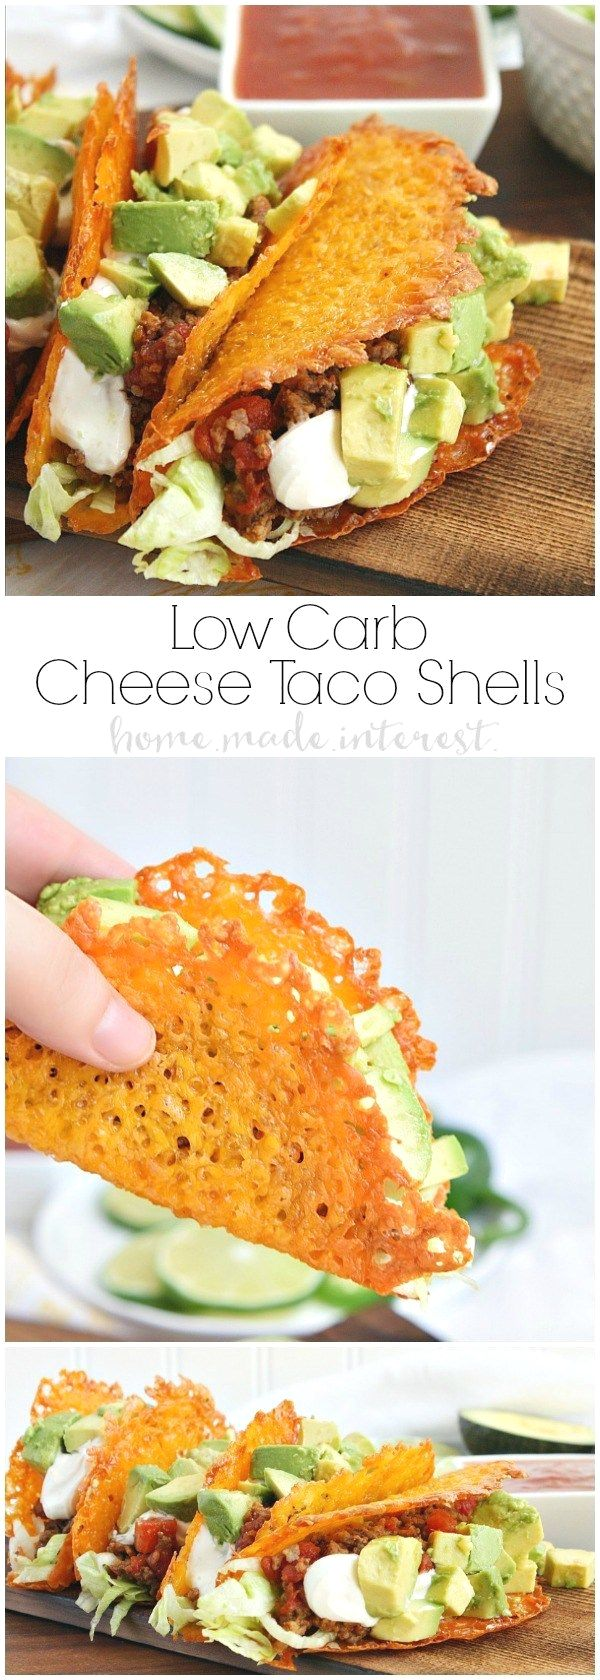 Have a low carb taco  Have a low carb taco night with these cheese taco shells made from baked cheddar cheese formed into the shape of a taco! Stuff your low carb taco with ground chorizo and ground beef cooked in Rotel and topped with diced avocado and sour cream.  https://www.pinterest.com/pin/203506476896736155/